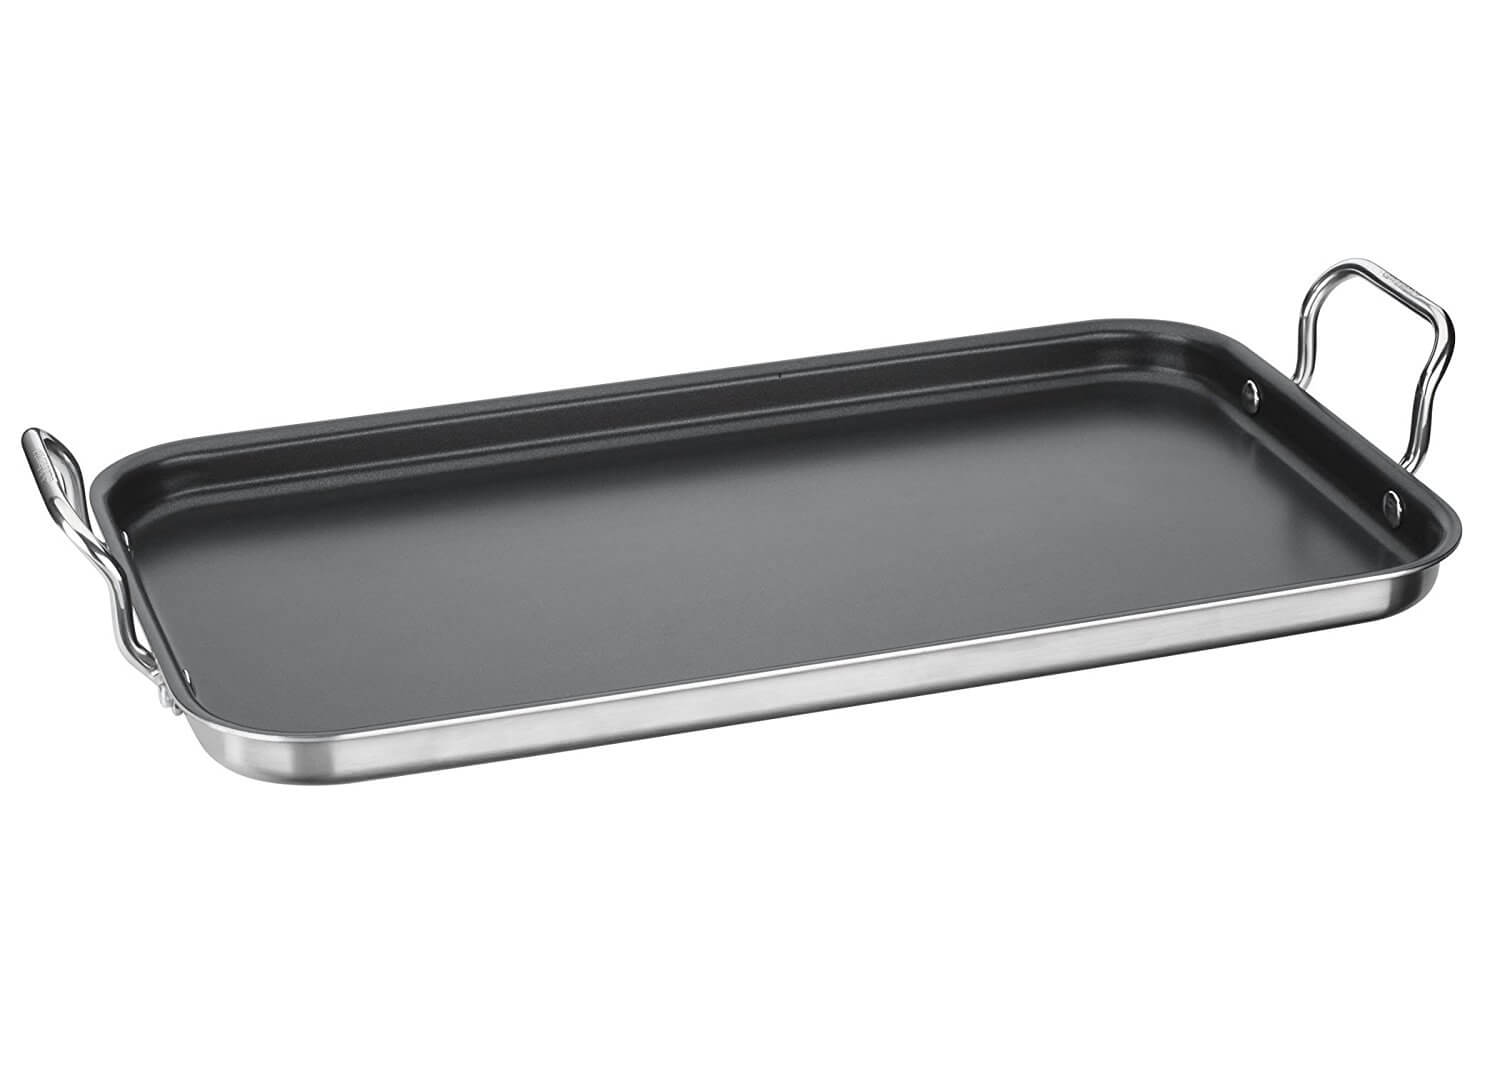 Cuisinart Non-Stick Double Burner Griddle